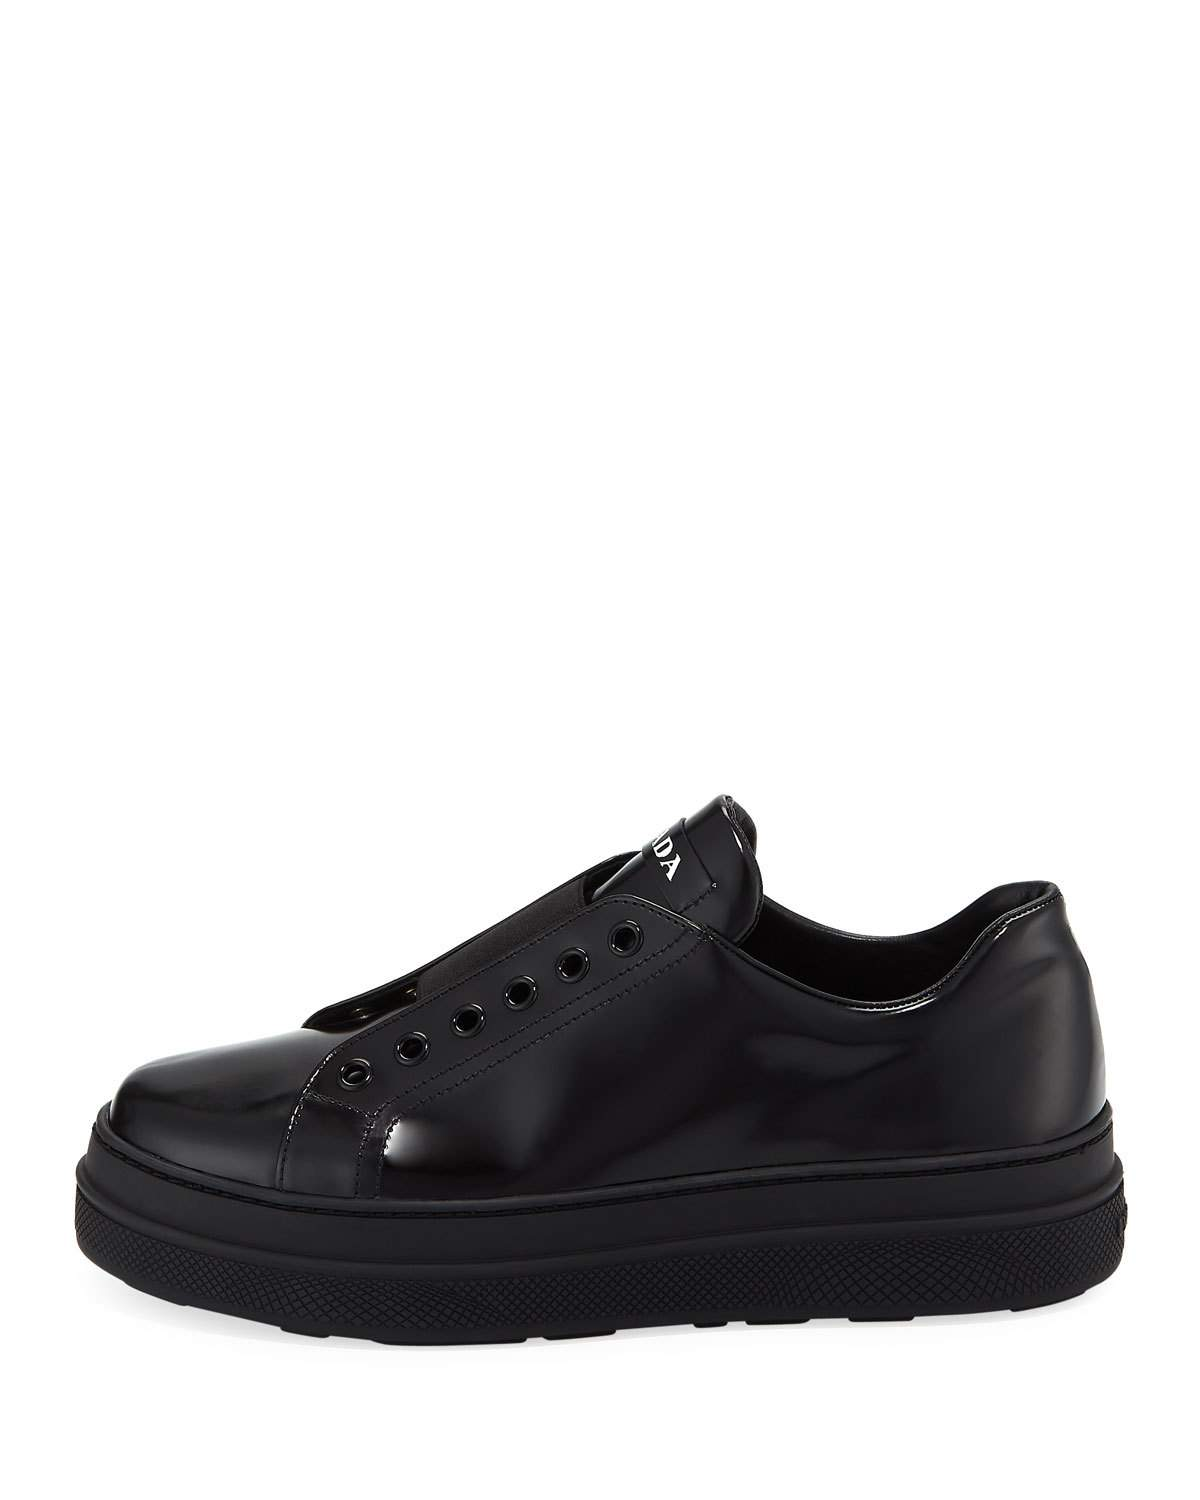 55d5f7bf017e Prada Leather Slip-On Low-Top Sneaker | Products in 2019 | Prada ...